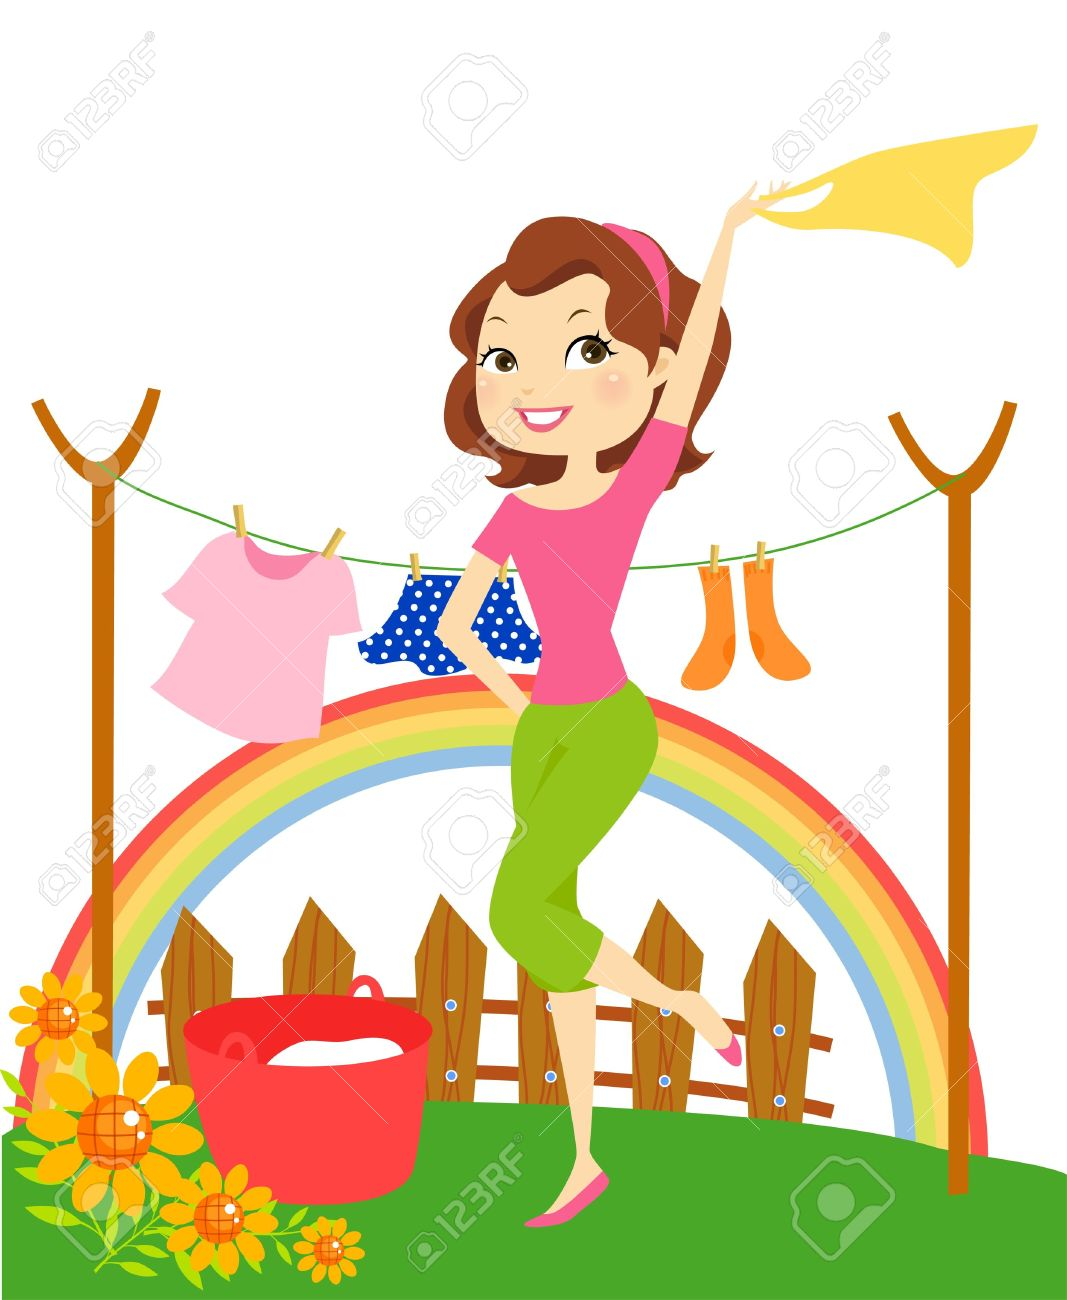 Washing clothes clipart image free Cartoon Of Housewife Hanging Clothes Royalty Free Cliparts ... image free